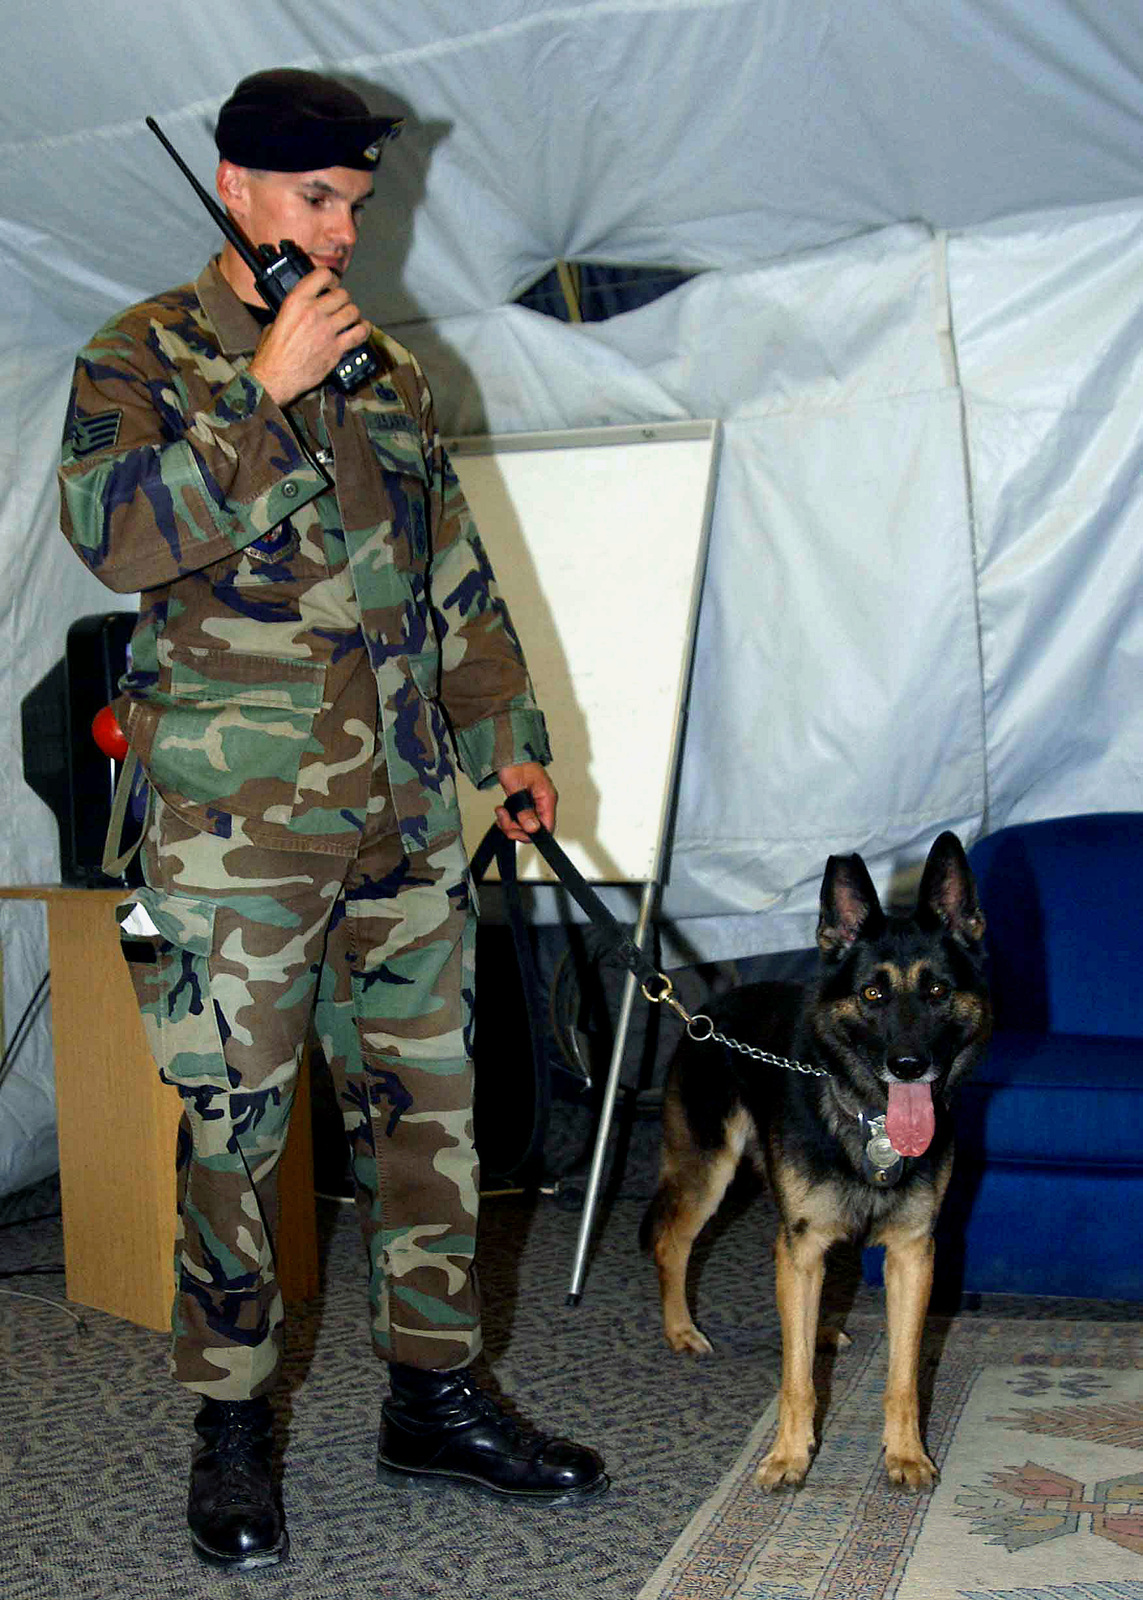 US Air Force (USAF) STAFF Sergeant (SSGT) Len Arsenault Military Working Dog Handler, 39th Security Forces Squadron (SFS), prepares conduct a routine search for explosives, with his working dog Brosky inside the morale tent at Incirlik Air Base (AB), Turkey, while deployed in support of Operation NORTHERN WATCH